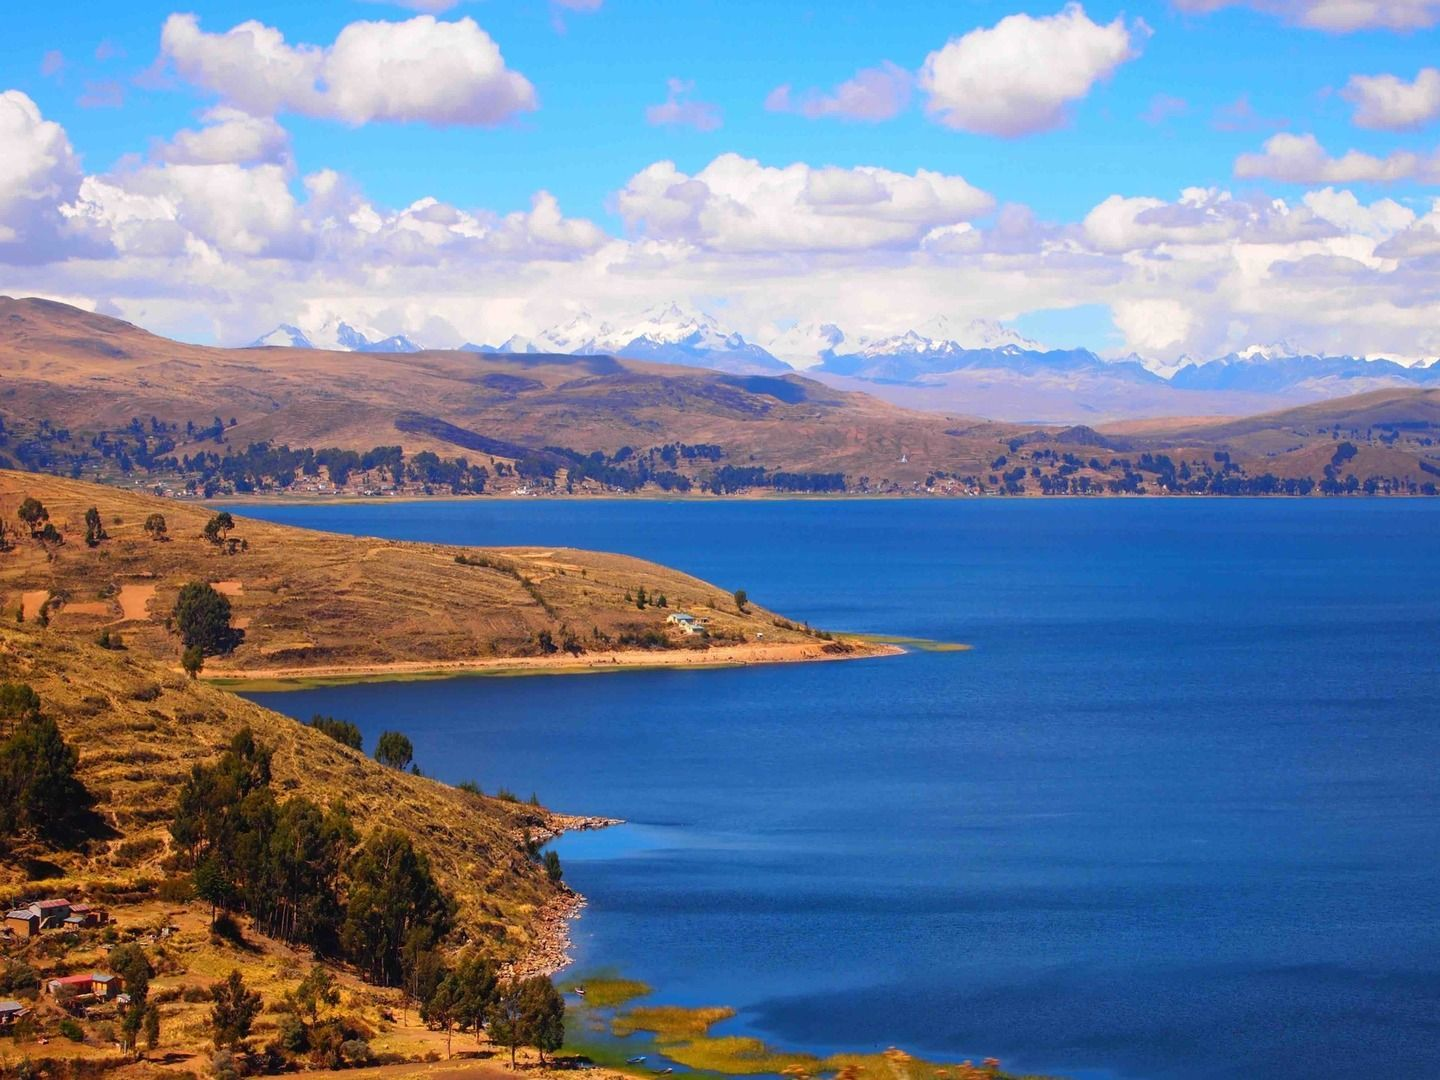 Hd Wallpapers For Pc 1080p Free Download Pack Lake Titicaca Wallpapers Wallpapers High Quality